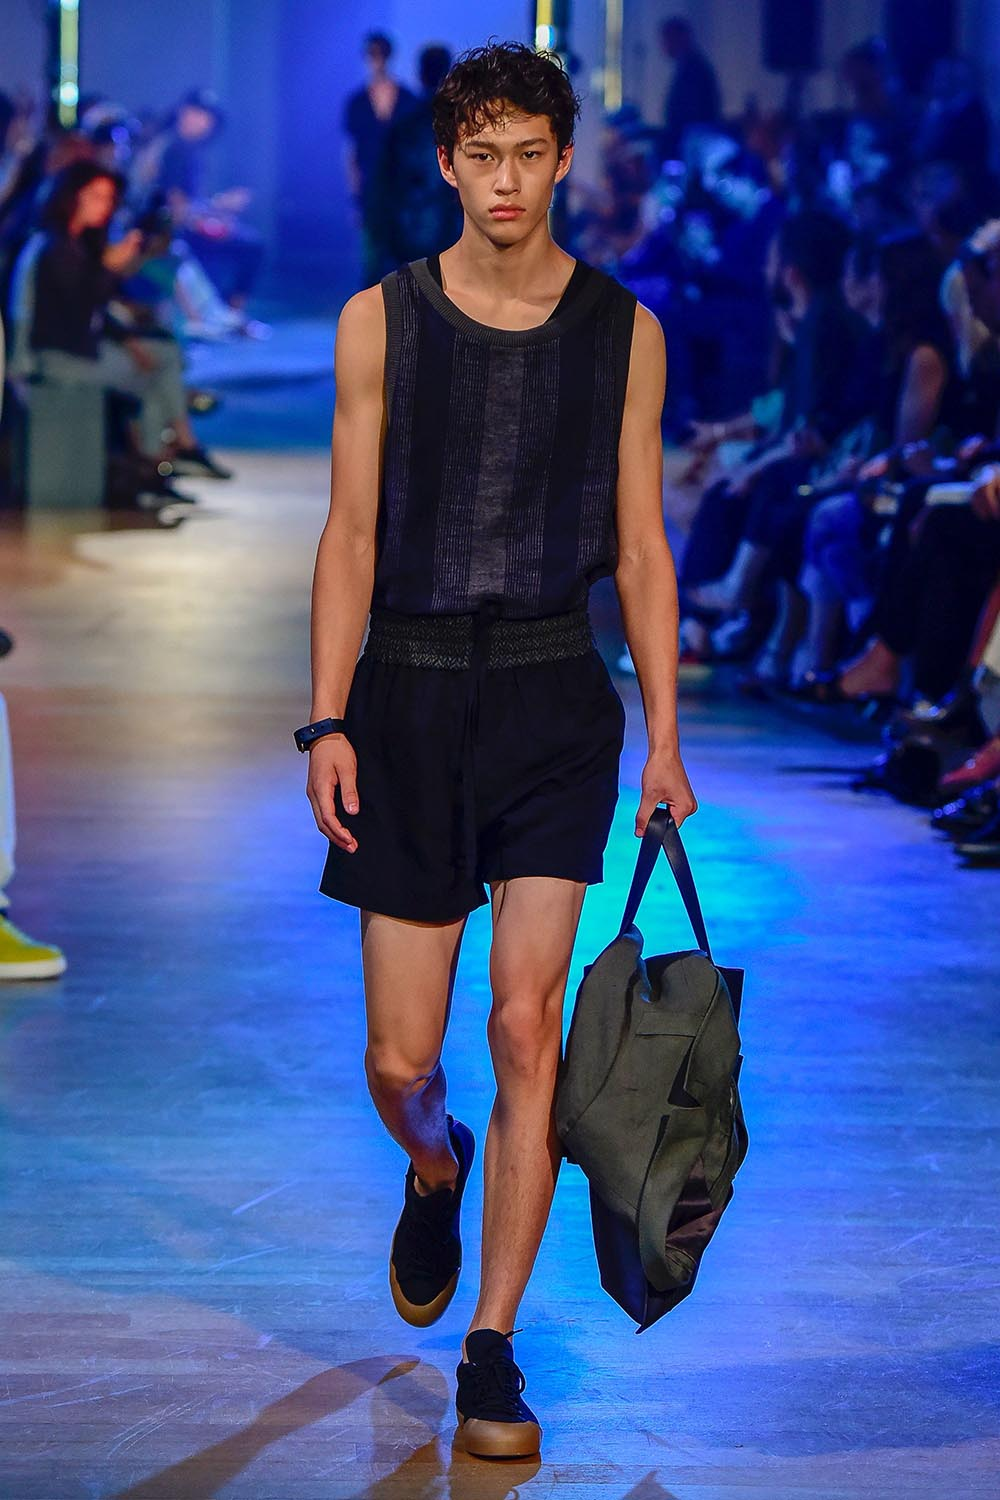 Cerruti 1881 Paris Fashion Week Men's SS19 - Sagaboi - Look 4